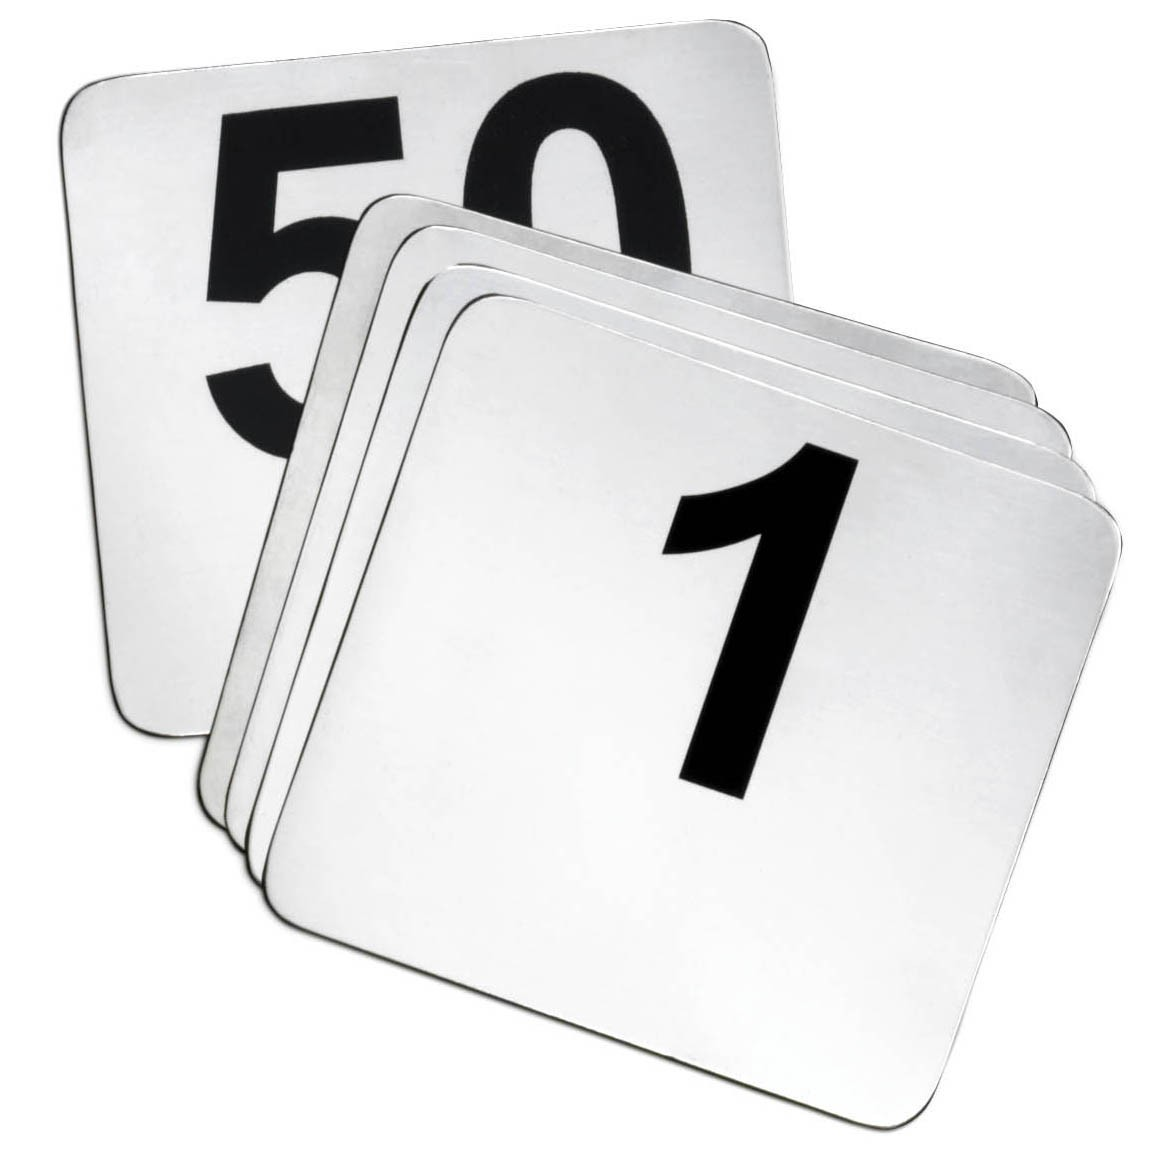 1-50 Stainless Steel Table Number Cards